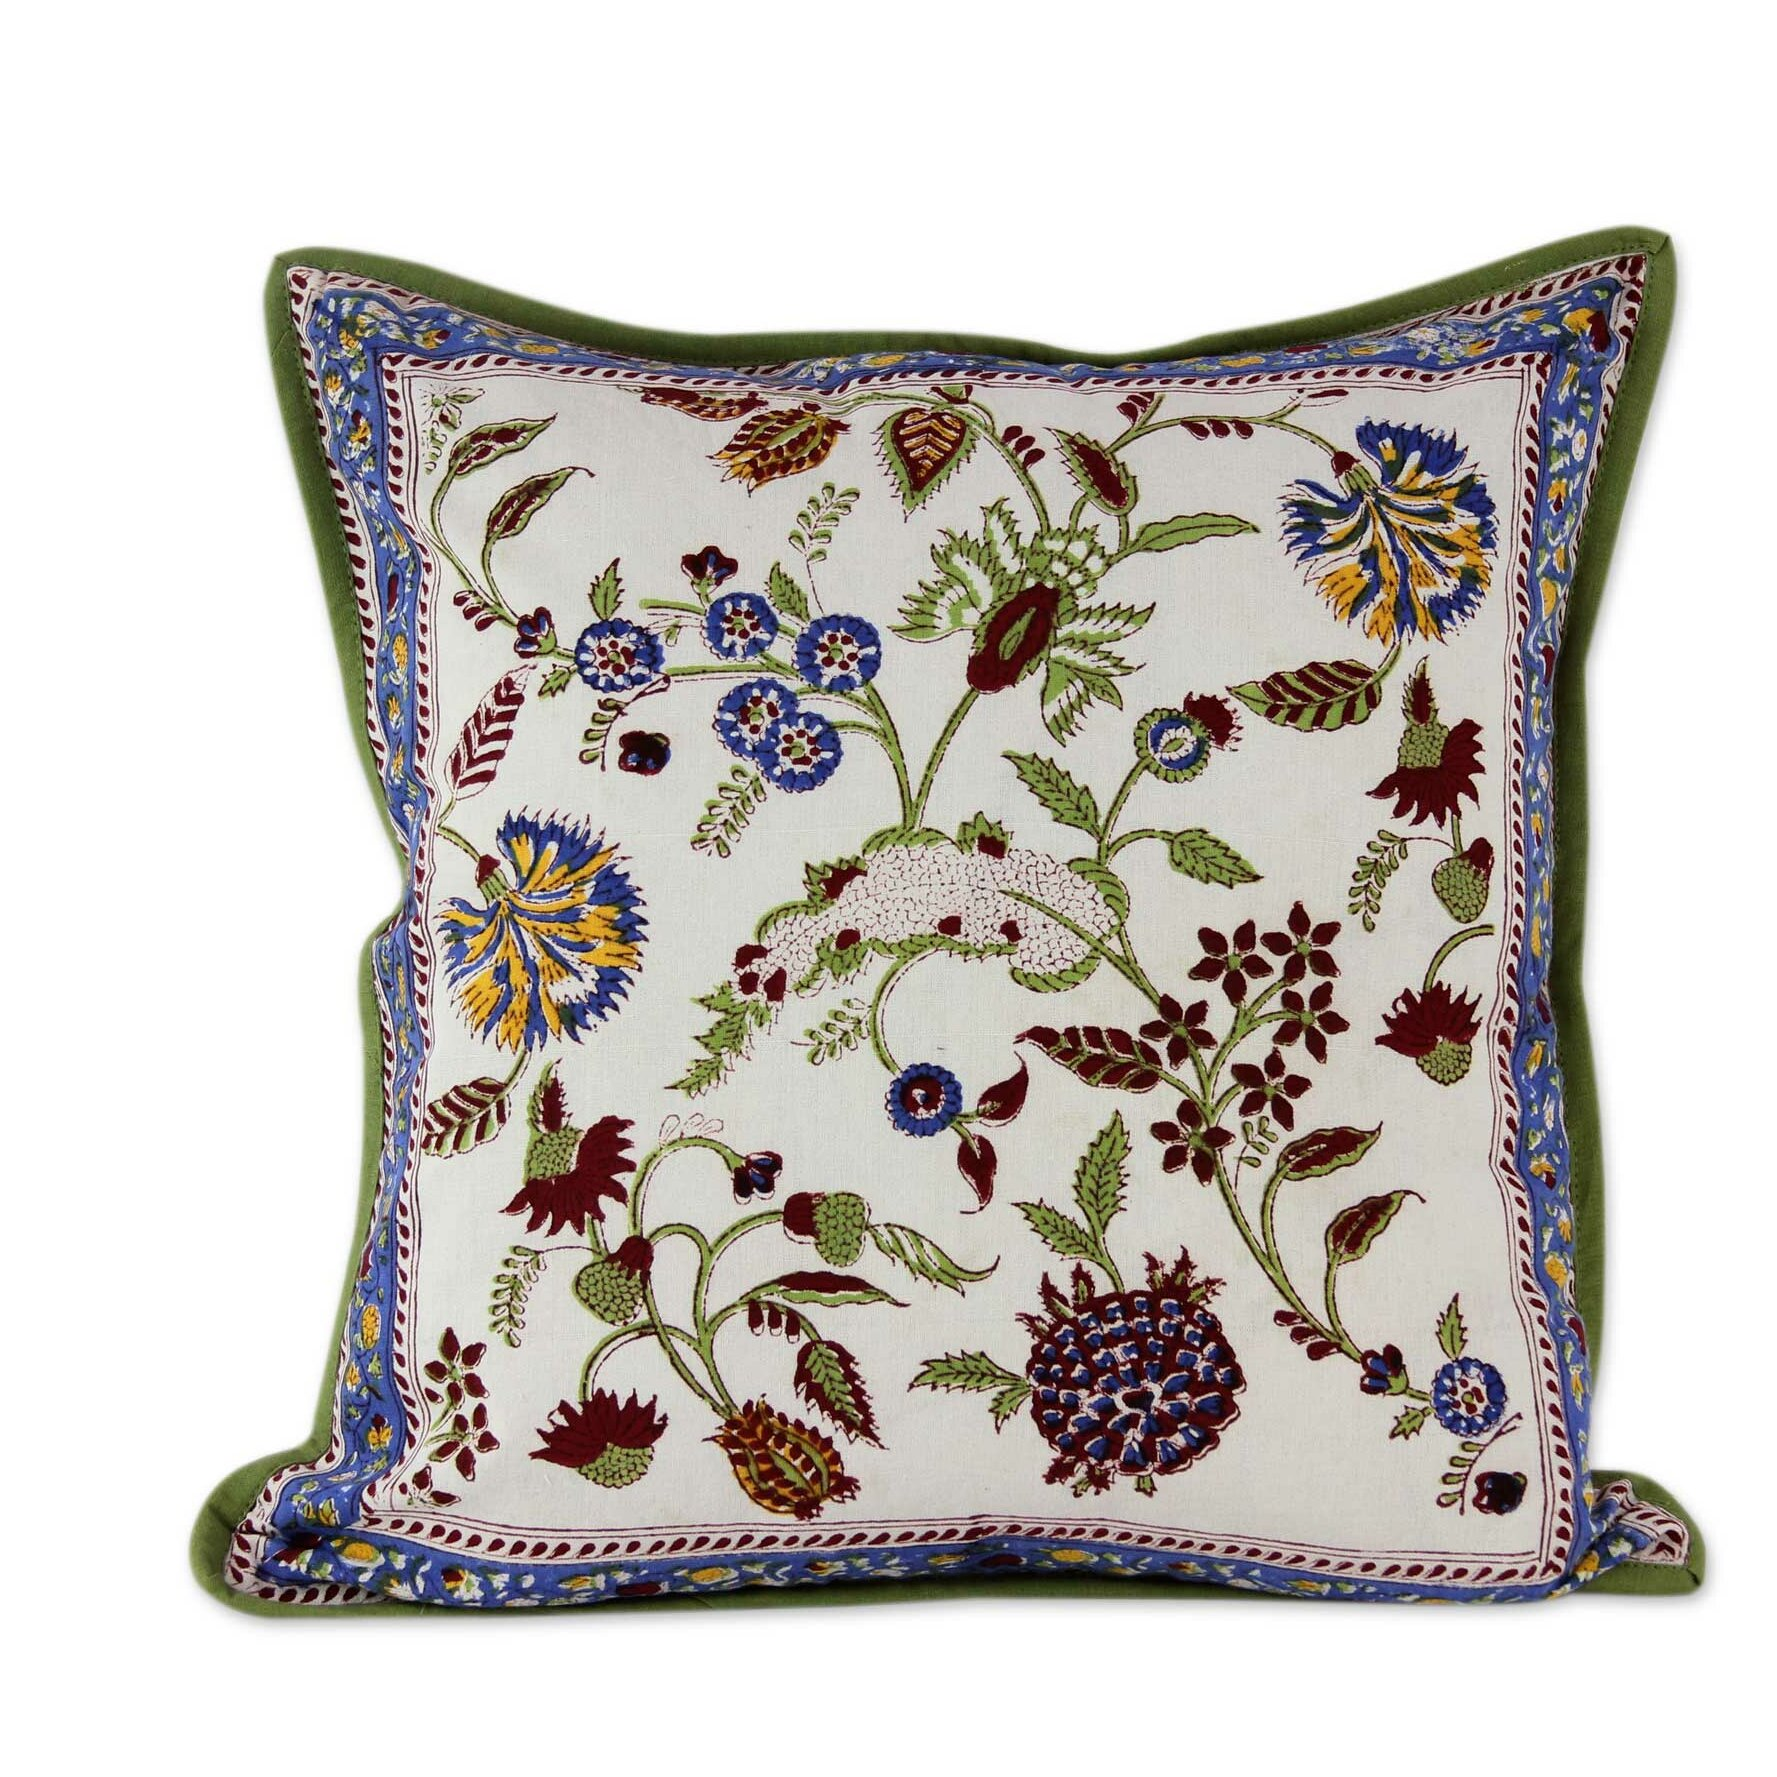 novica sonik sethi indian block print floral motif cotton throw pillow cover wayfair. Black Bedroom Furniture Sets. Home Design Ideas